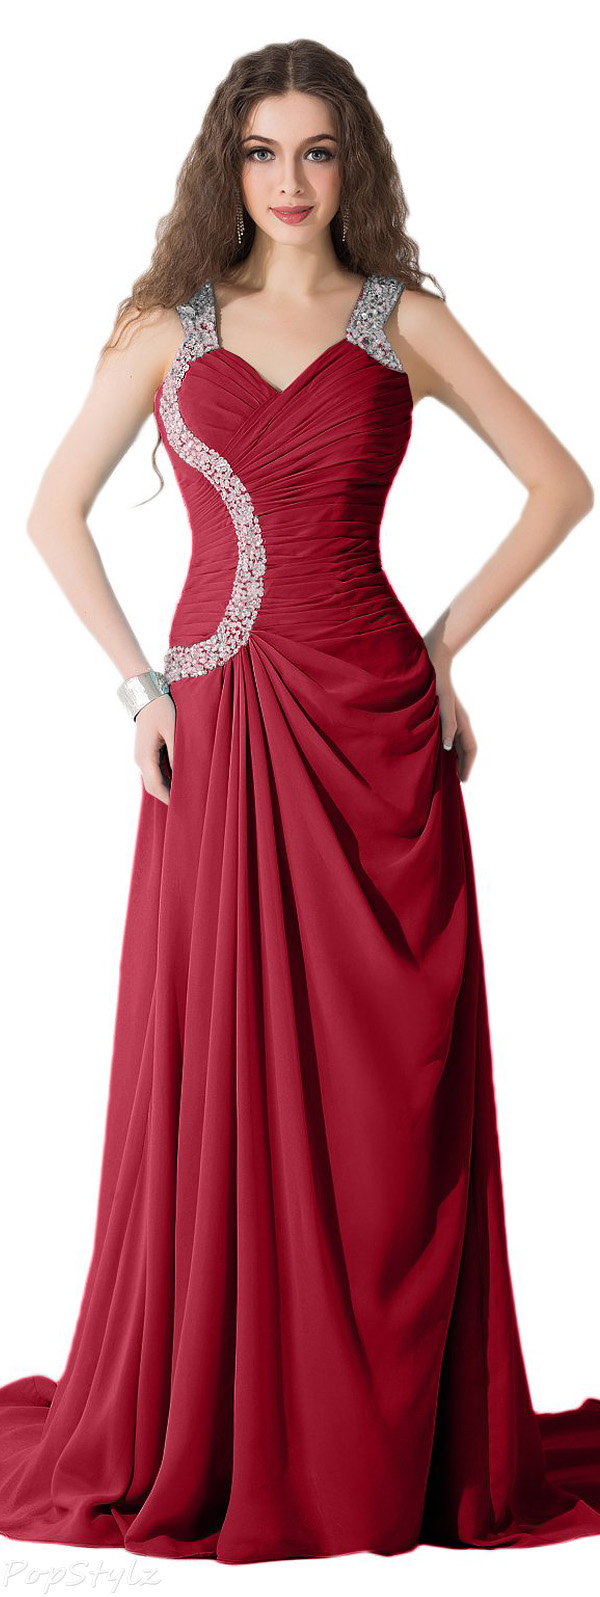 Sunvary Elegant Long Chiffon Formal Occasion Gown